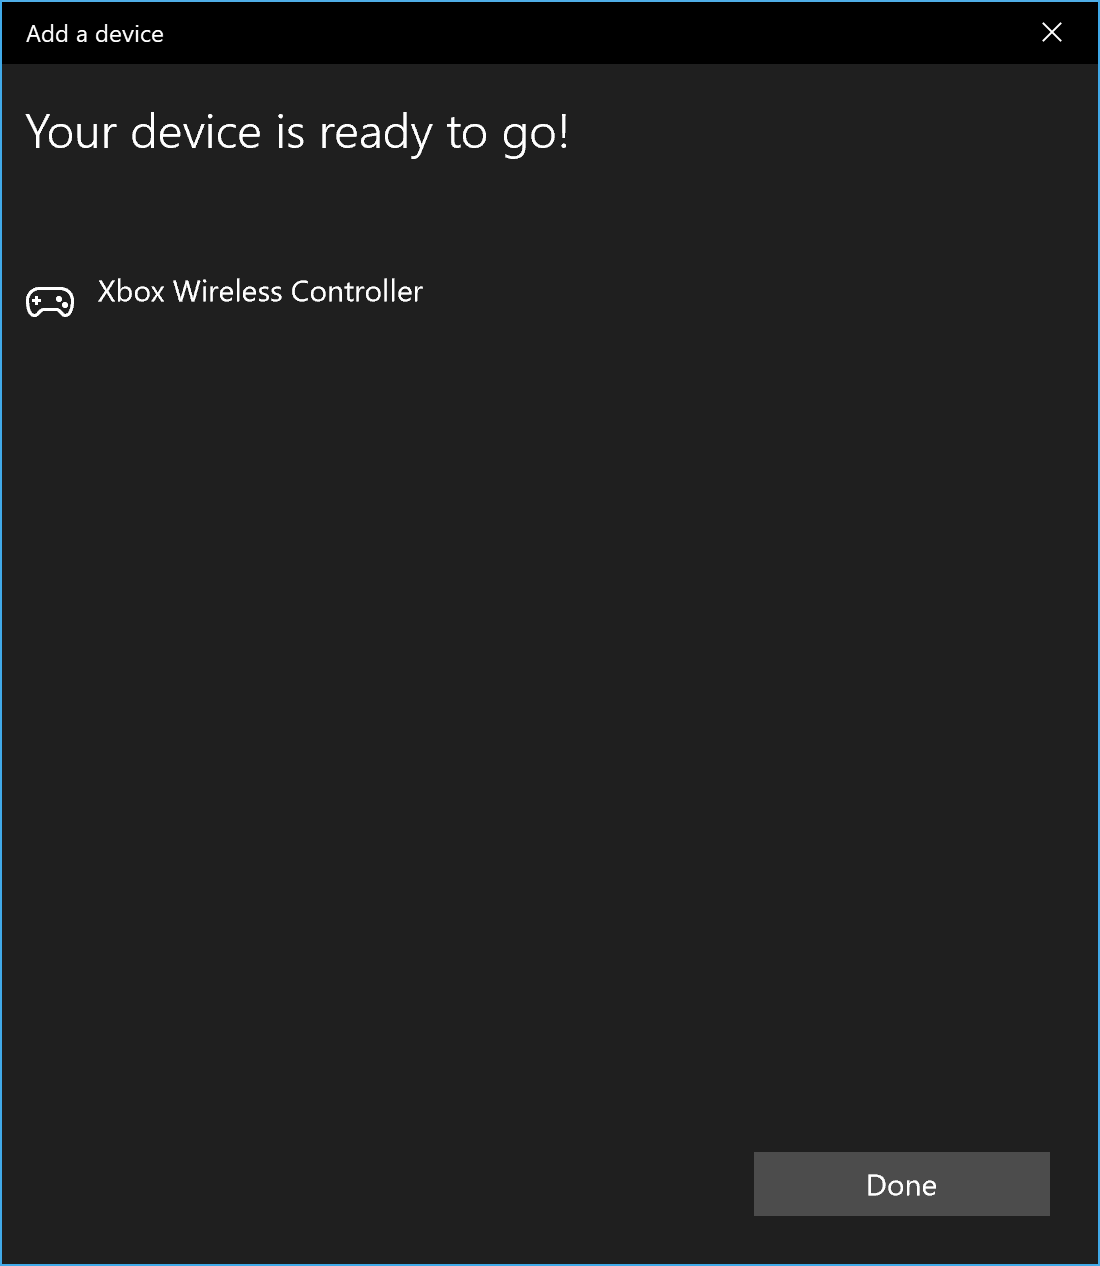 With Xbox Wireless Connections, You Can Connect 8 Xbox Wireless Controllers  At The Same Time, Or 4 Controllers That Have Xbox Chat Headsets Attached